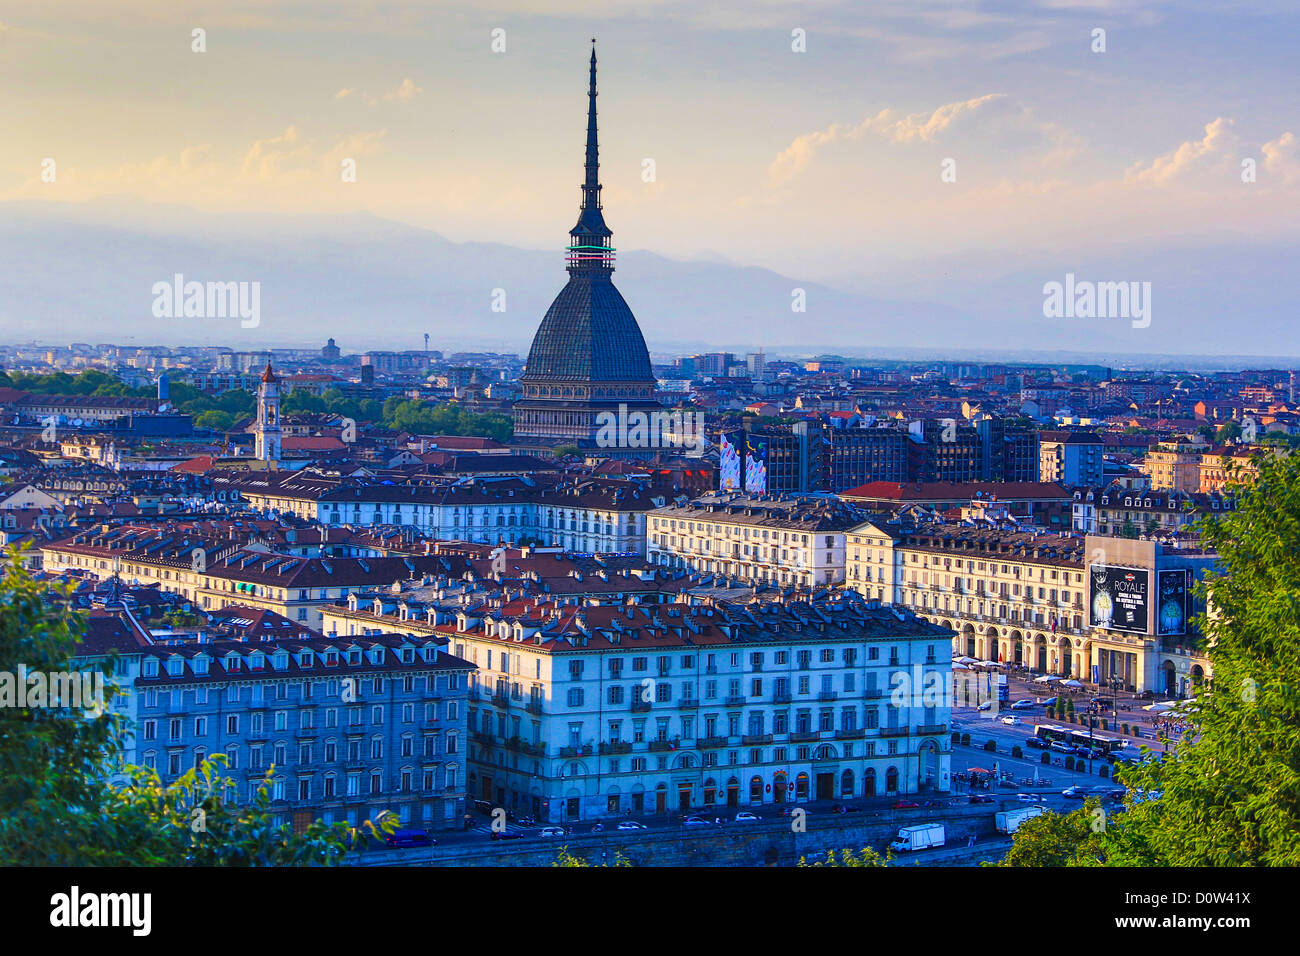 Italy Europe Travel Torino Turin City Mole Antonelliana Architecture Center Church Dome Downtown History Piedmont